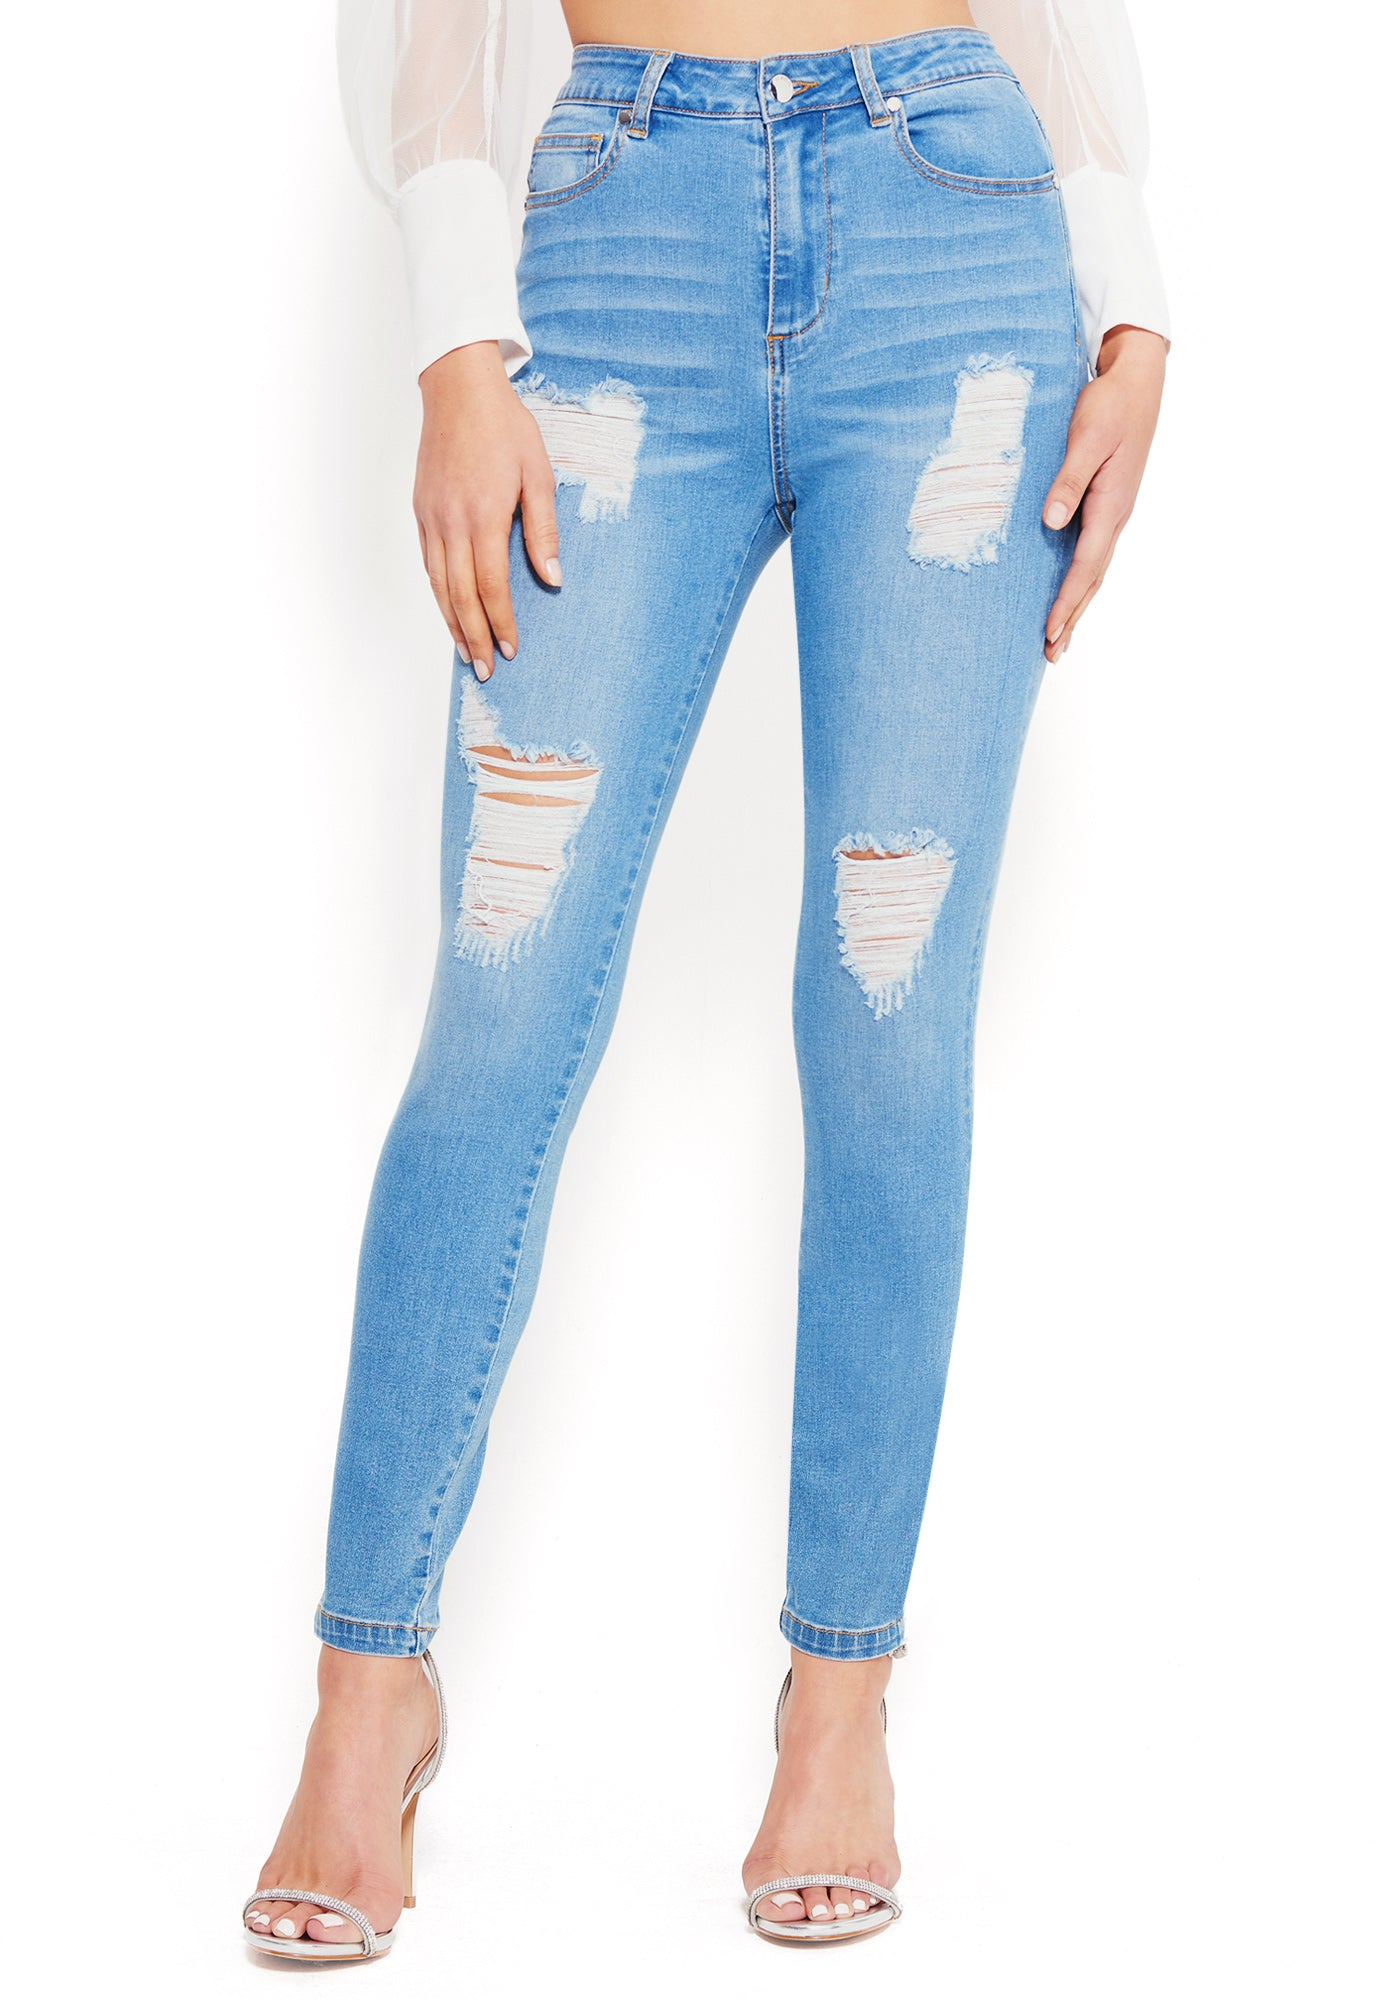 Bebe Women's Destructed Skinny Jeans, Size 25 in Light Blue Wash Cotton/Spandex